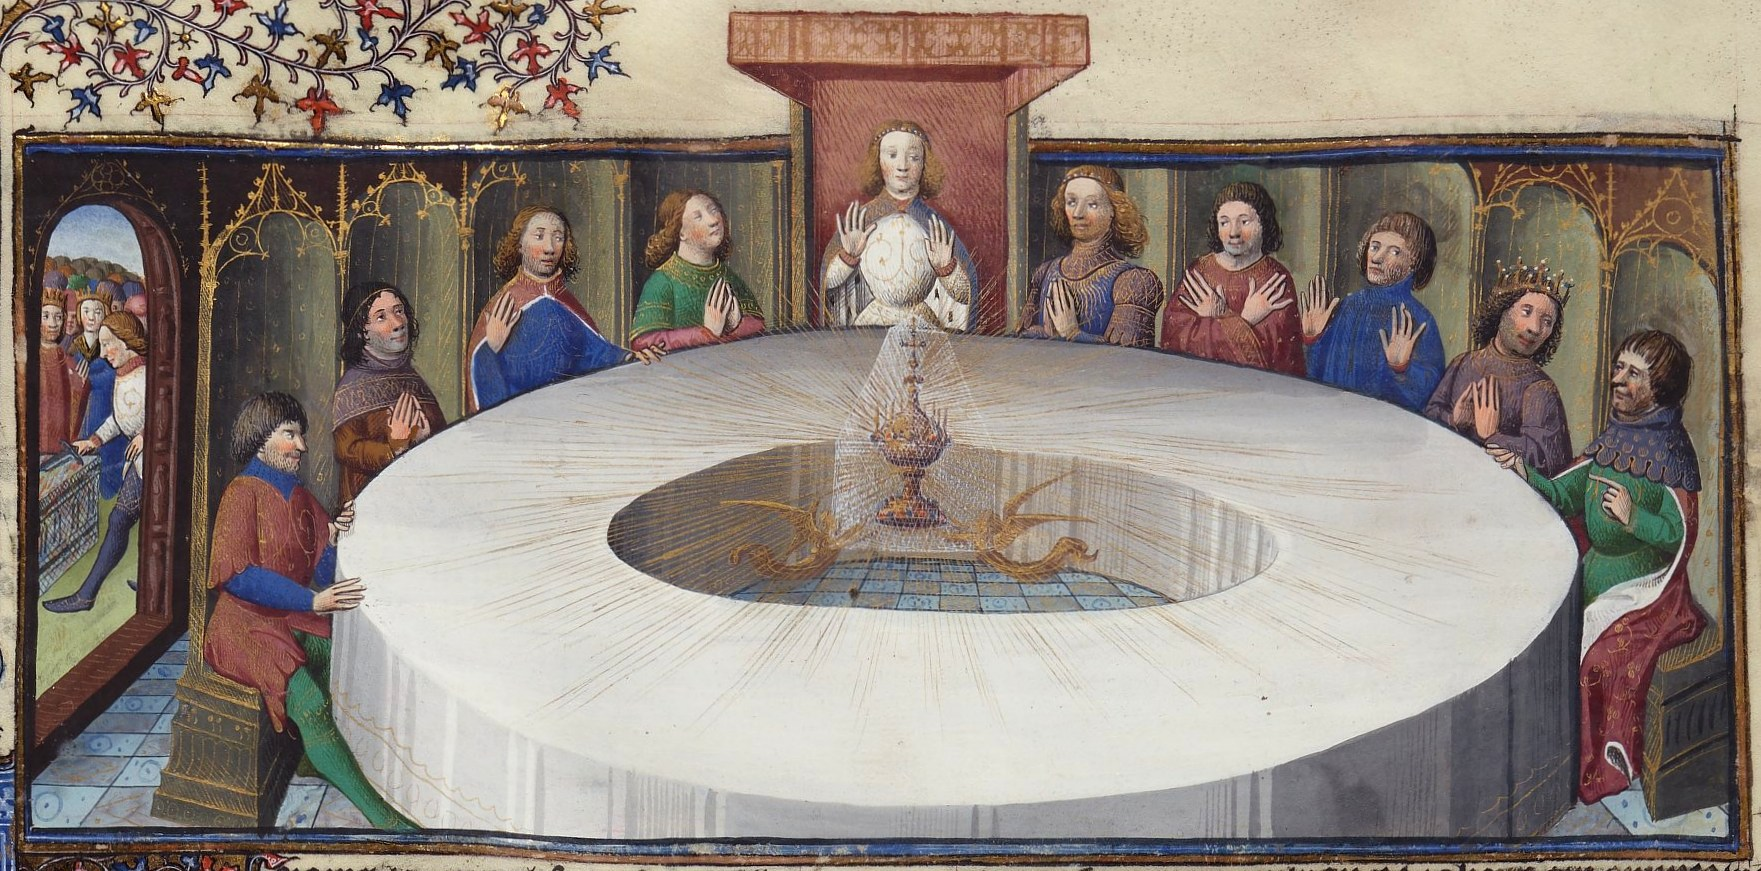 Power positions dirty furniture - King arthur s round table found ...